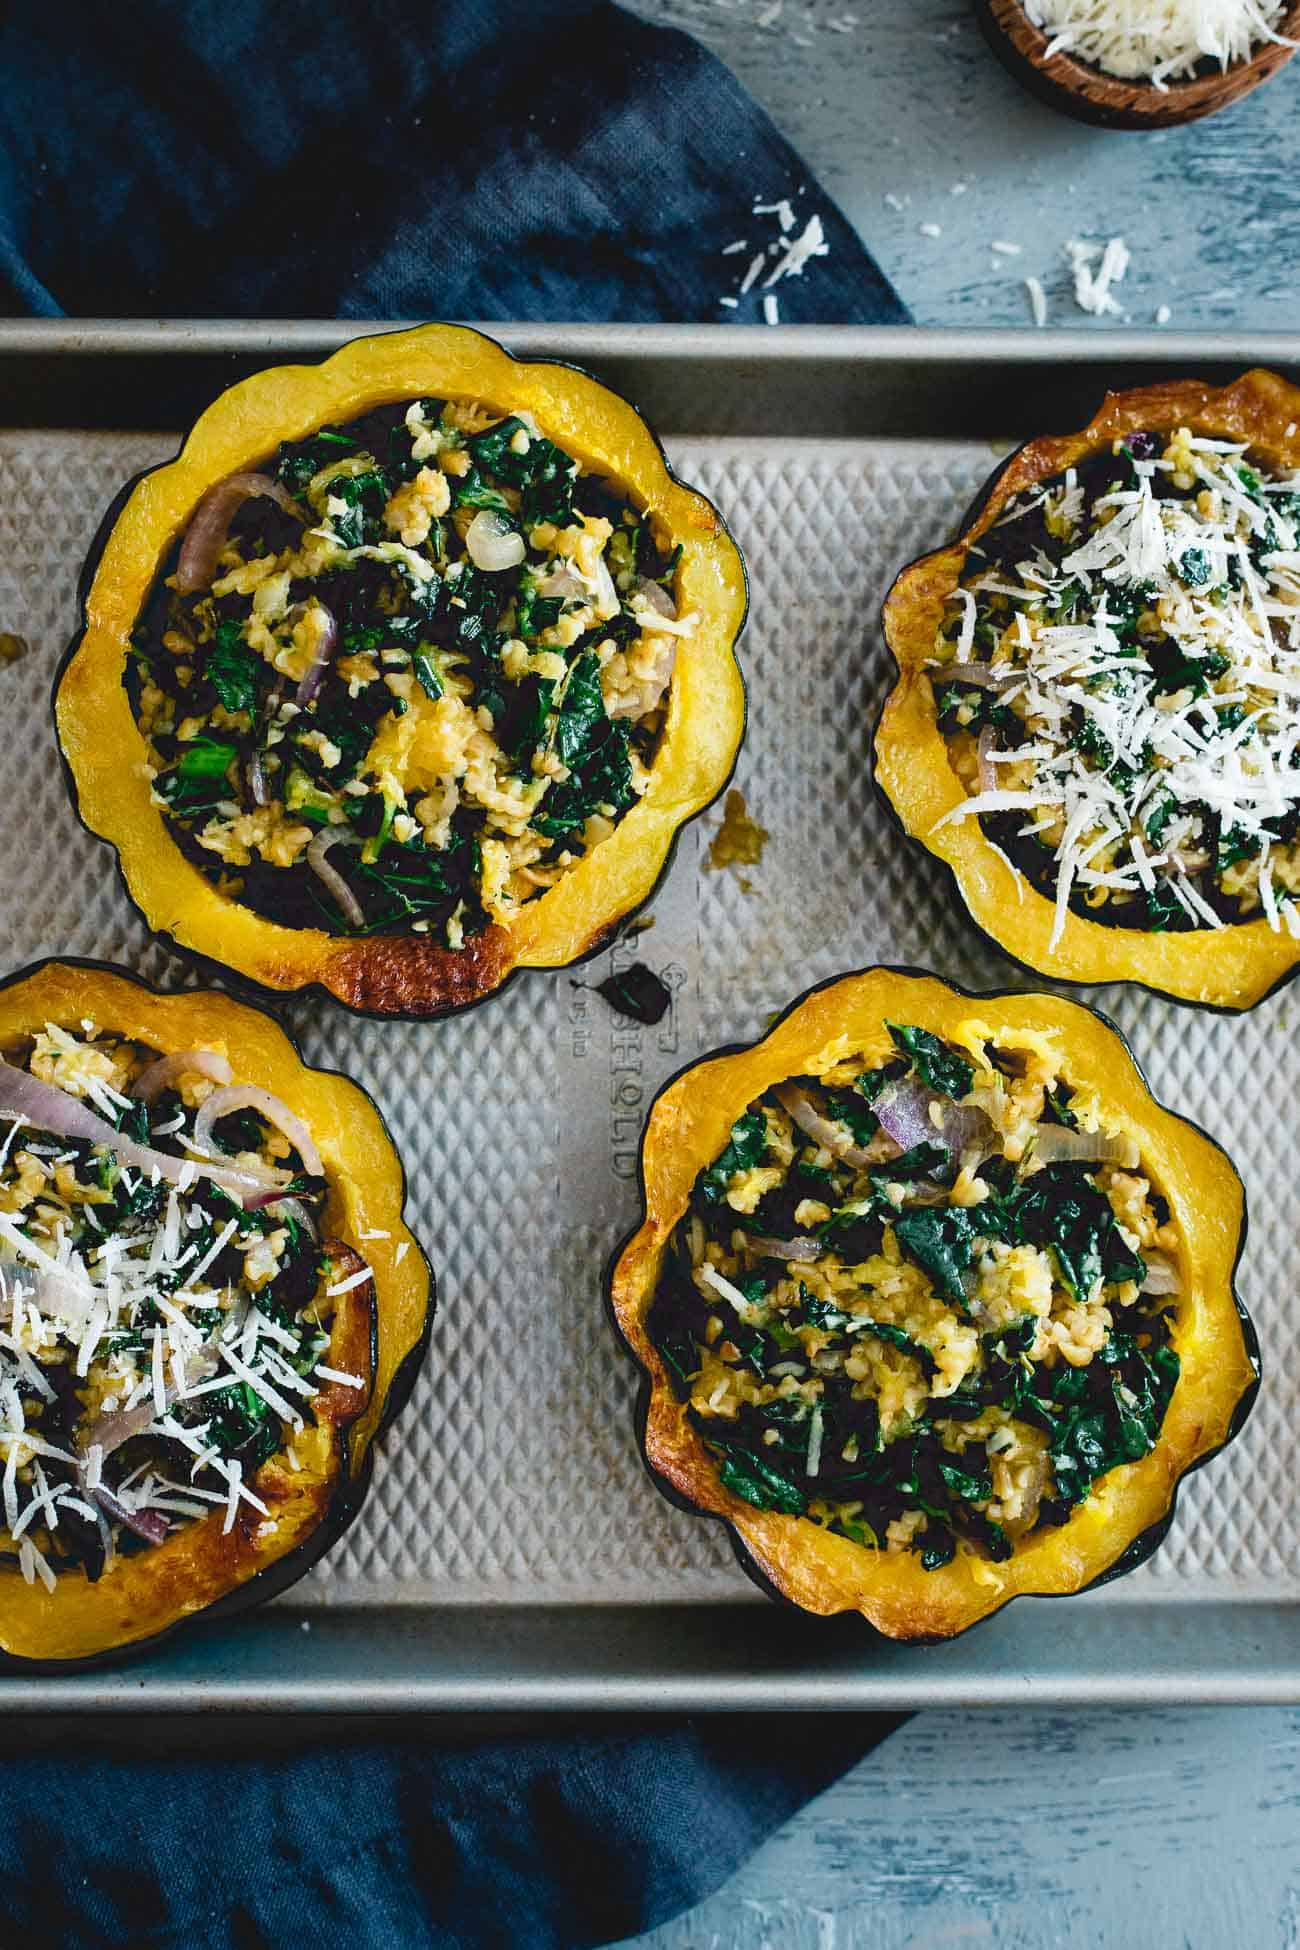 Kale, freekah and pecorino romano combine in these fall inspired twice baked acorn squash.